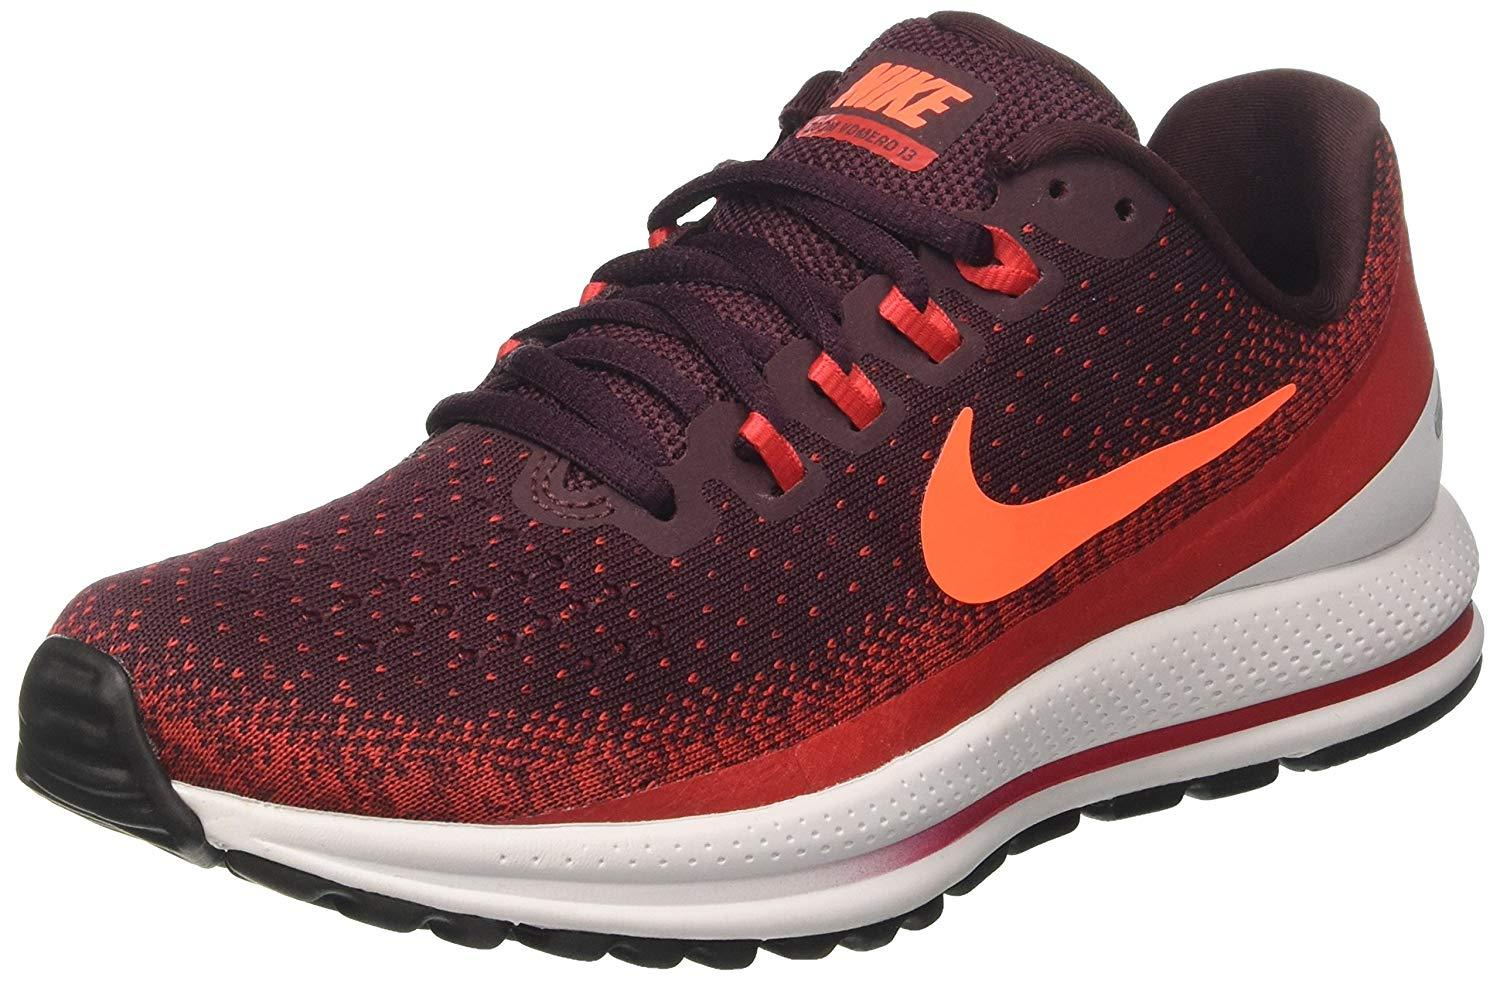 Nike Air Zoom Vomero 13 Running Shoe, Deep BurgundyTotal